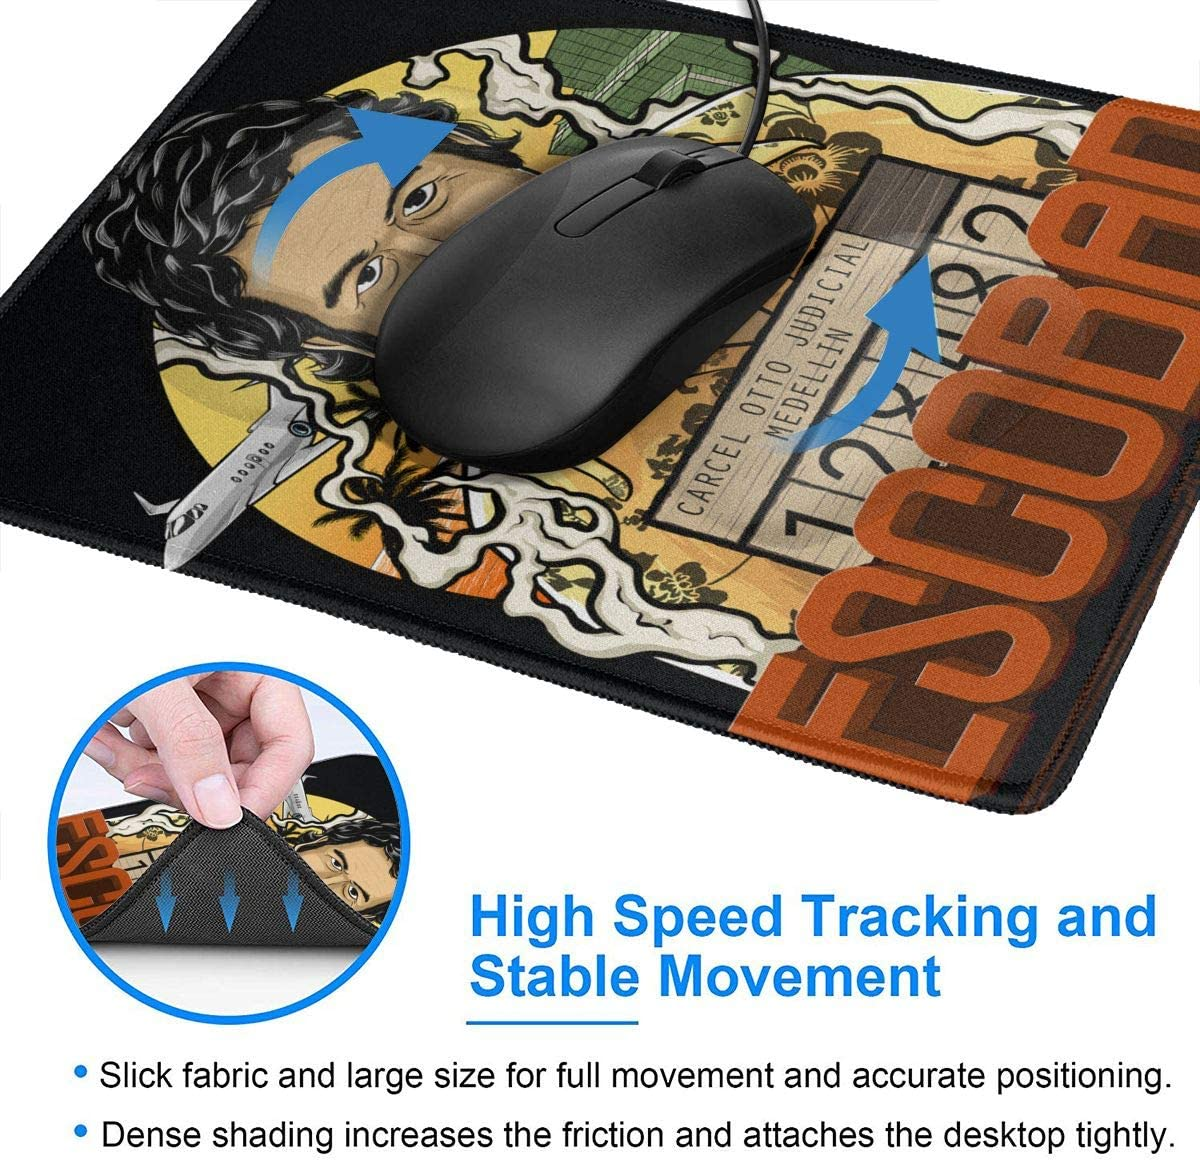 Laptop Wehoiweh Pablo Escobar Mouse Pads for Computers Office /& Home,Multiple Sizes